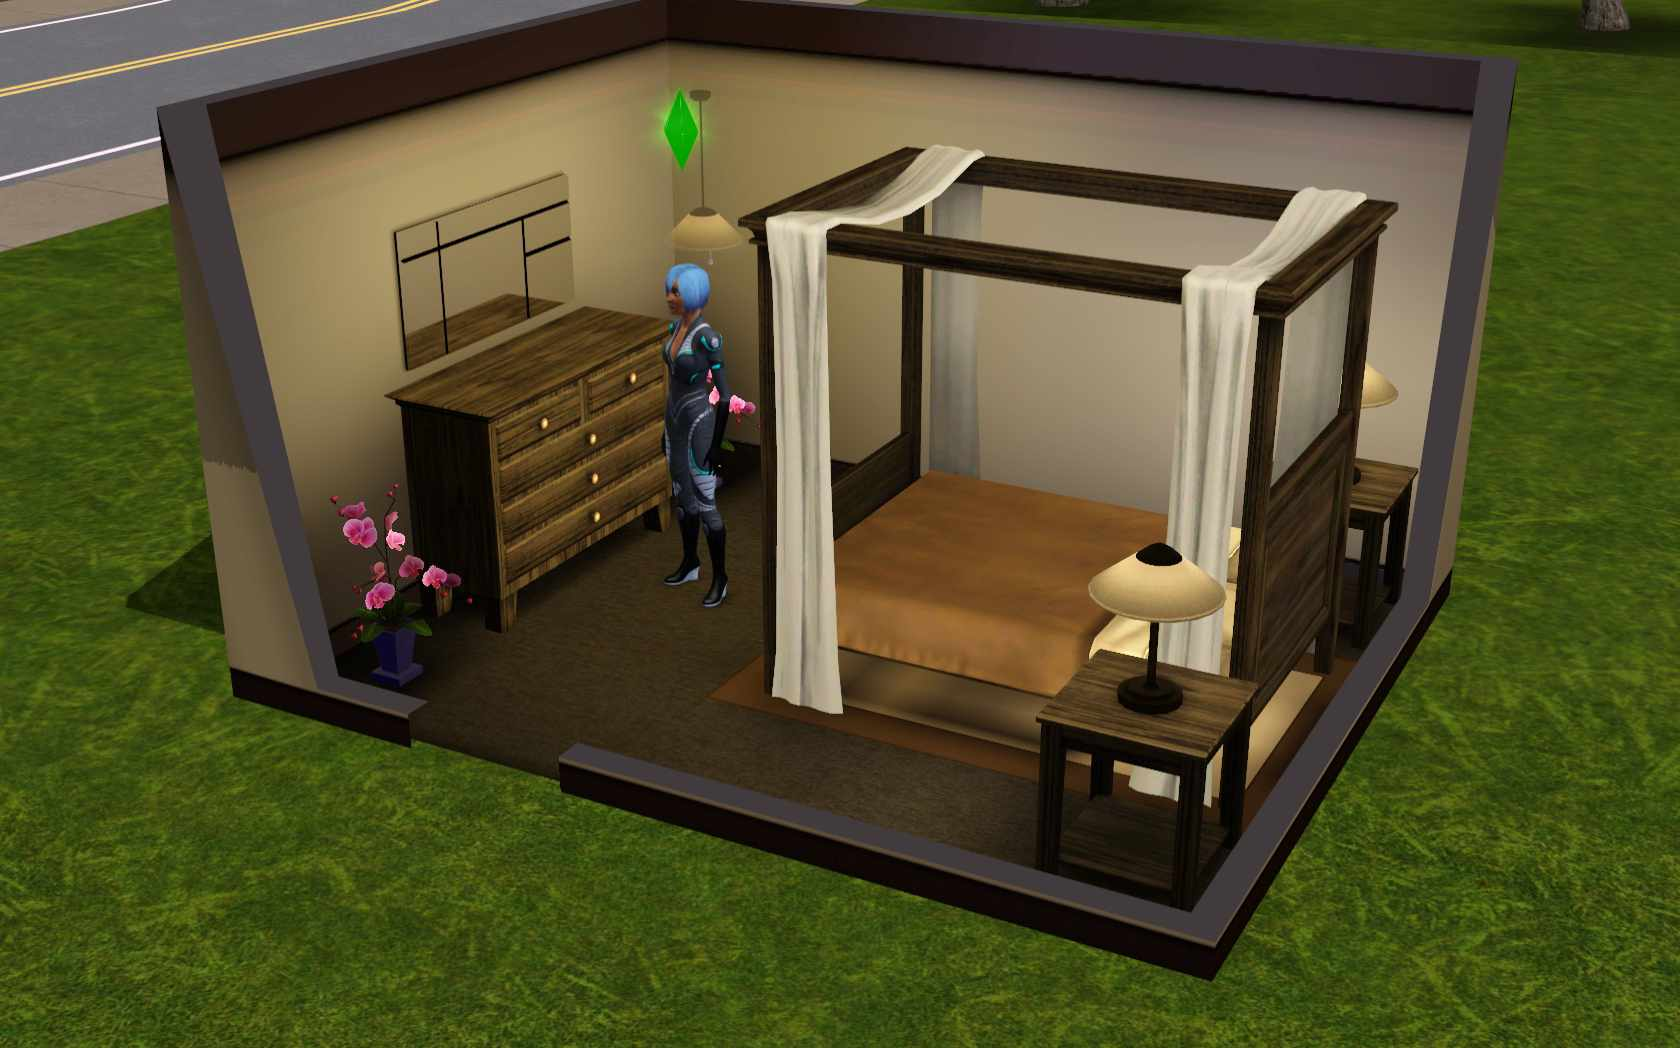 Sims 3 Bathroom Ideas Captivating The Sims 3 Room Build Ideas And Examples Design Inspiration